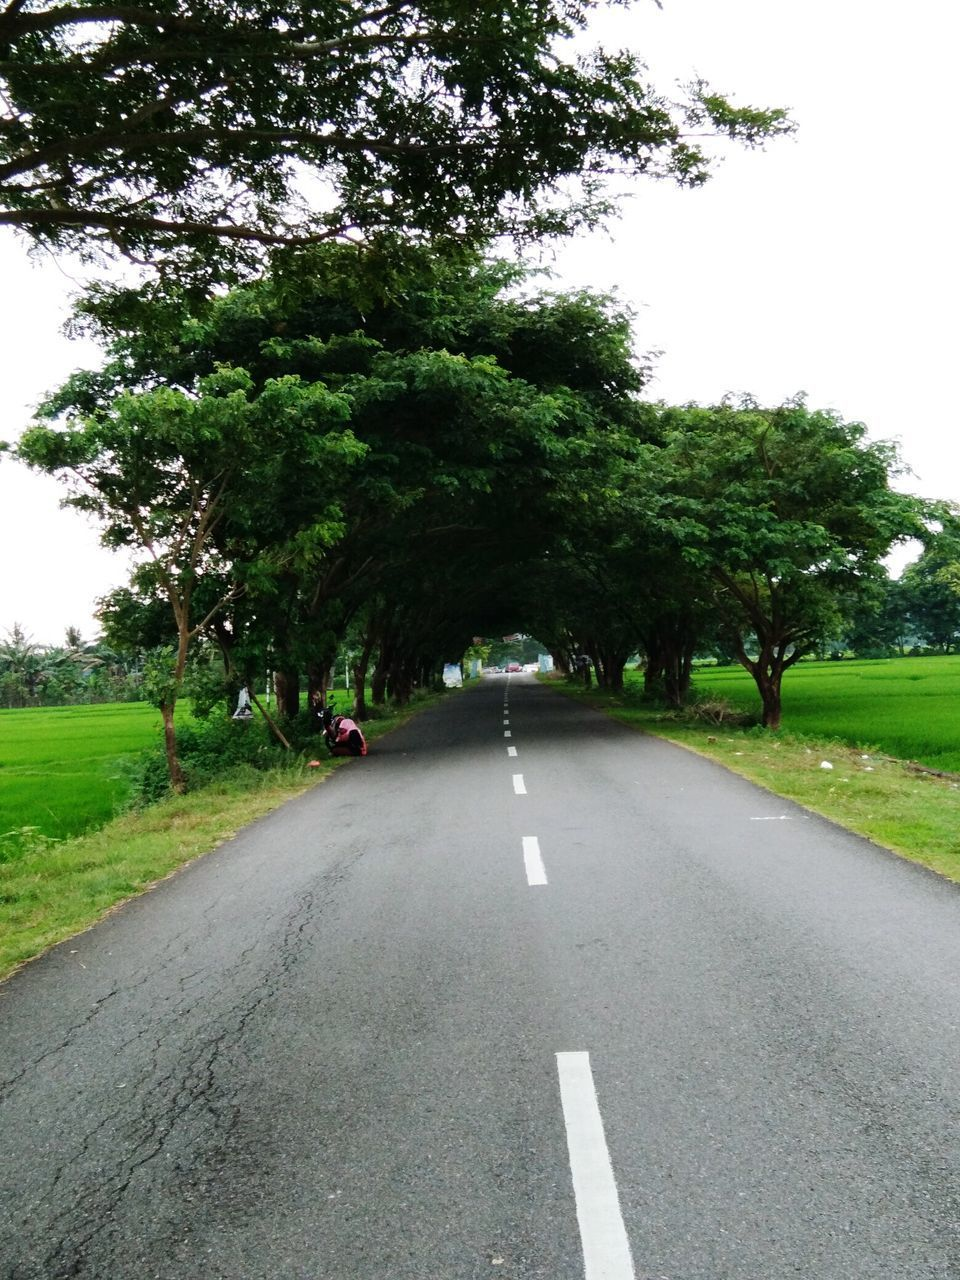 tree, road, the way forward, green color, transportation, diminishing perspective, day, nature, outdoors, asphalt, clear sky, growth, grass, tranquil scene, no people, tranquility, scenics, landscape, sky, beauty in nature